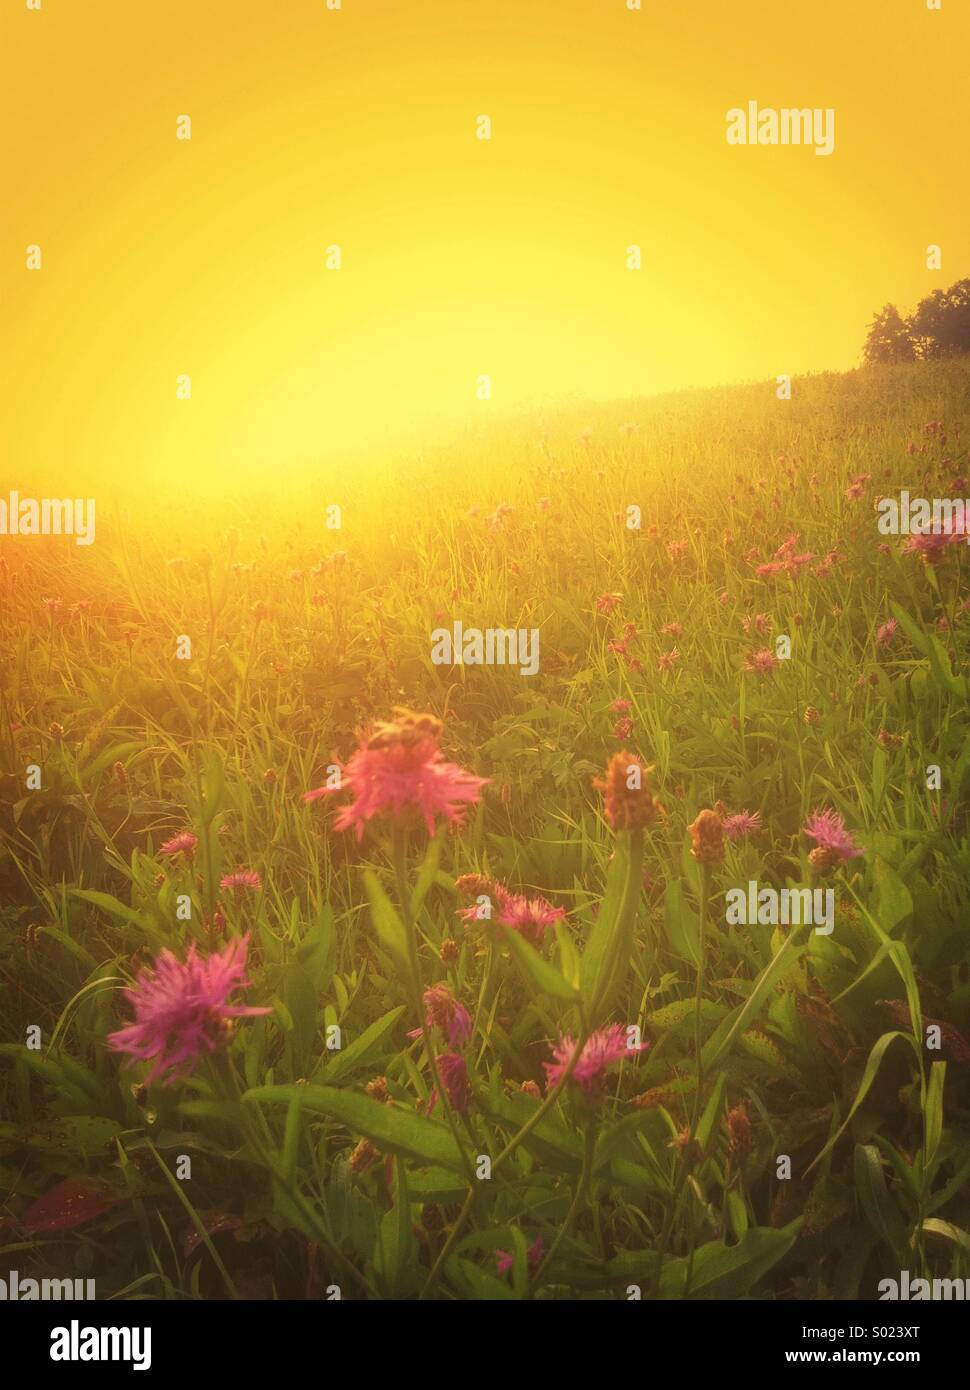 Sun rays over a meadow - Stock Image